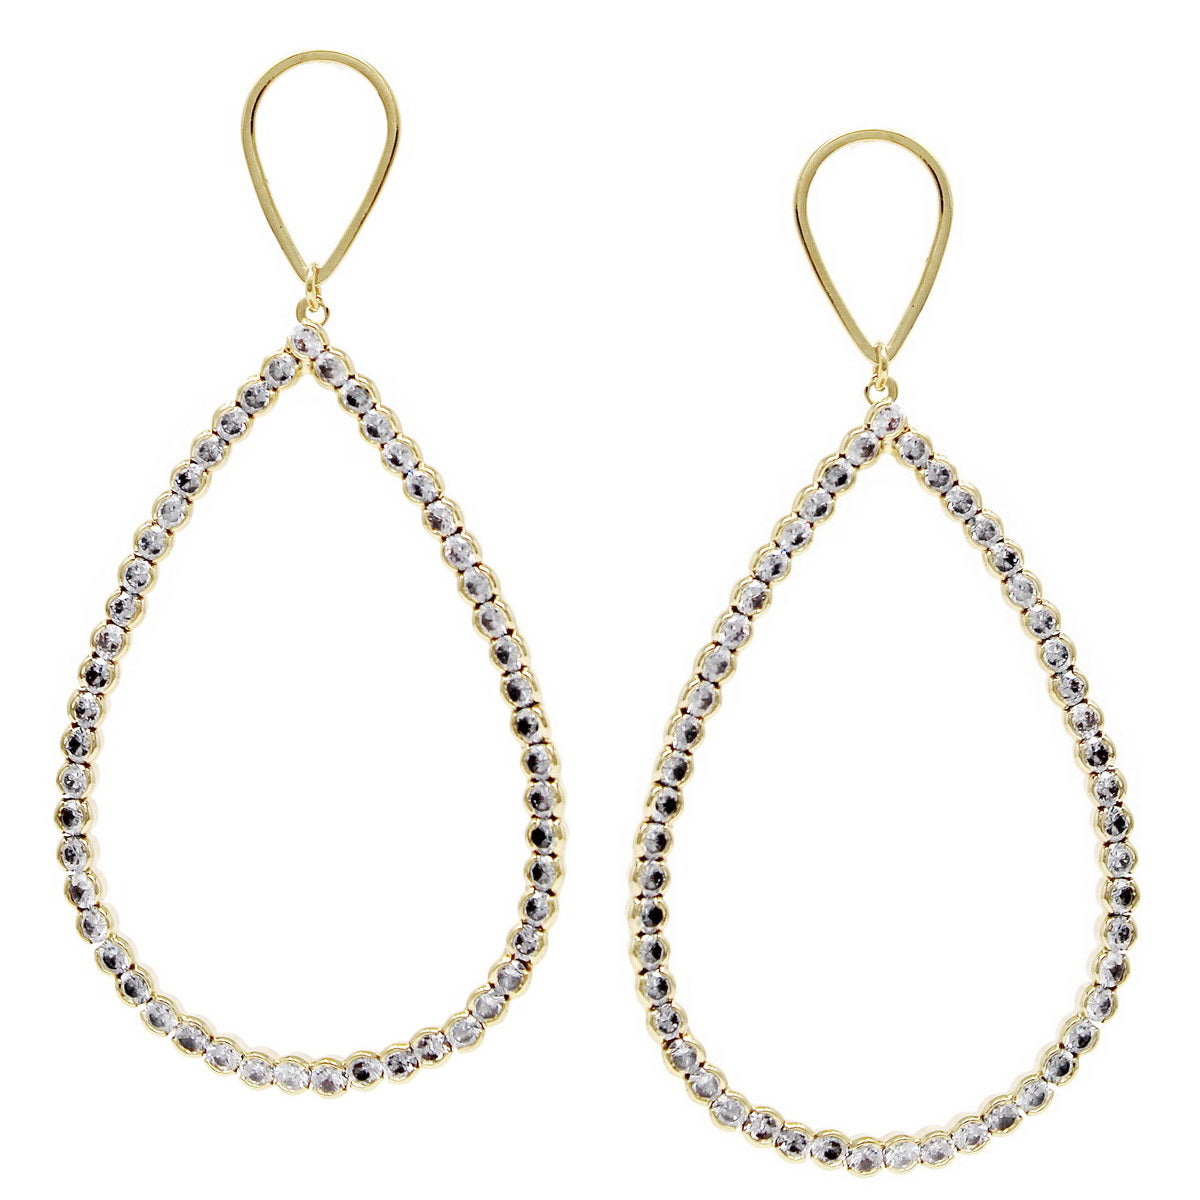 Cubic Zirconia Pave Teardrop Statement Earrings